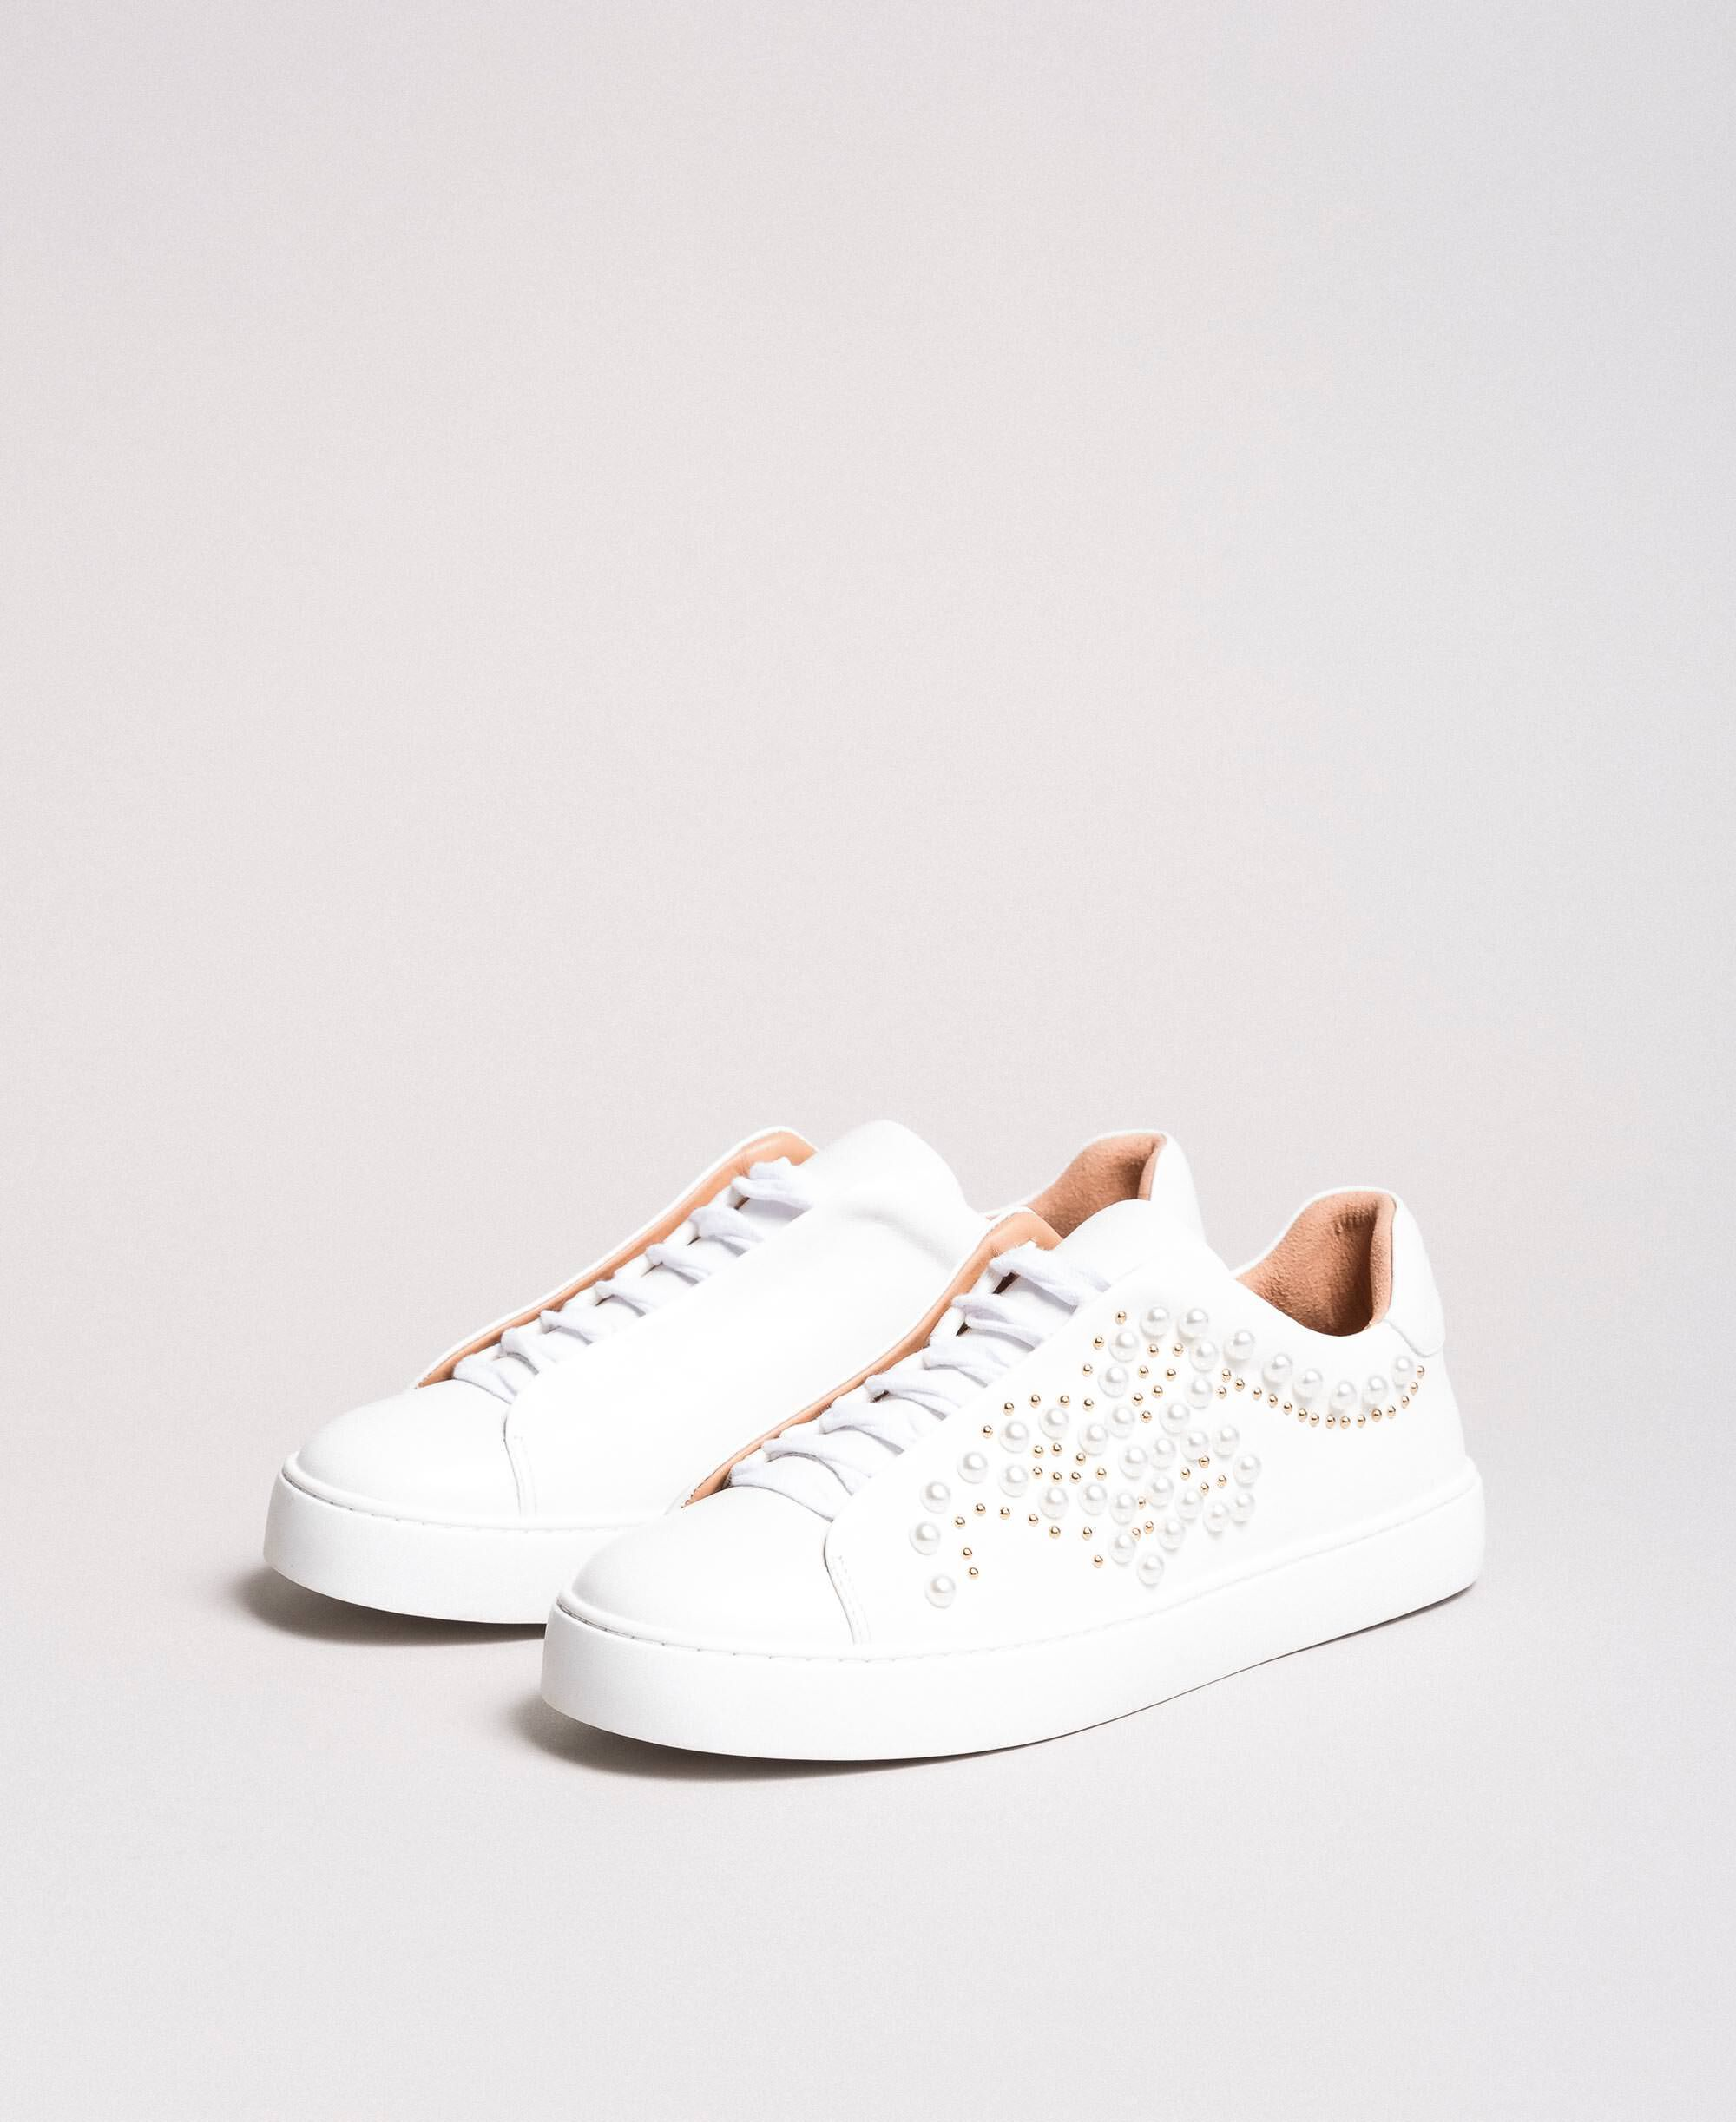 Studded leather sneakers with pearls